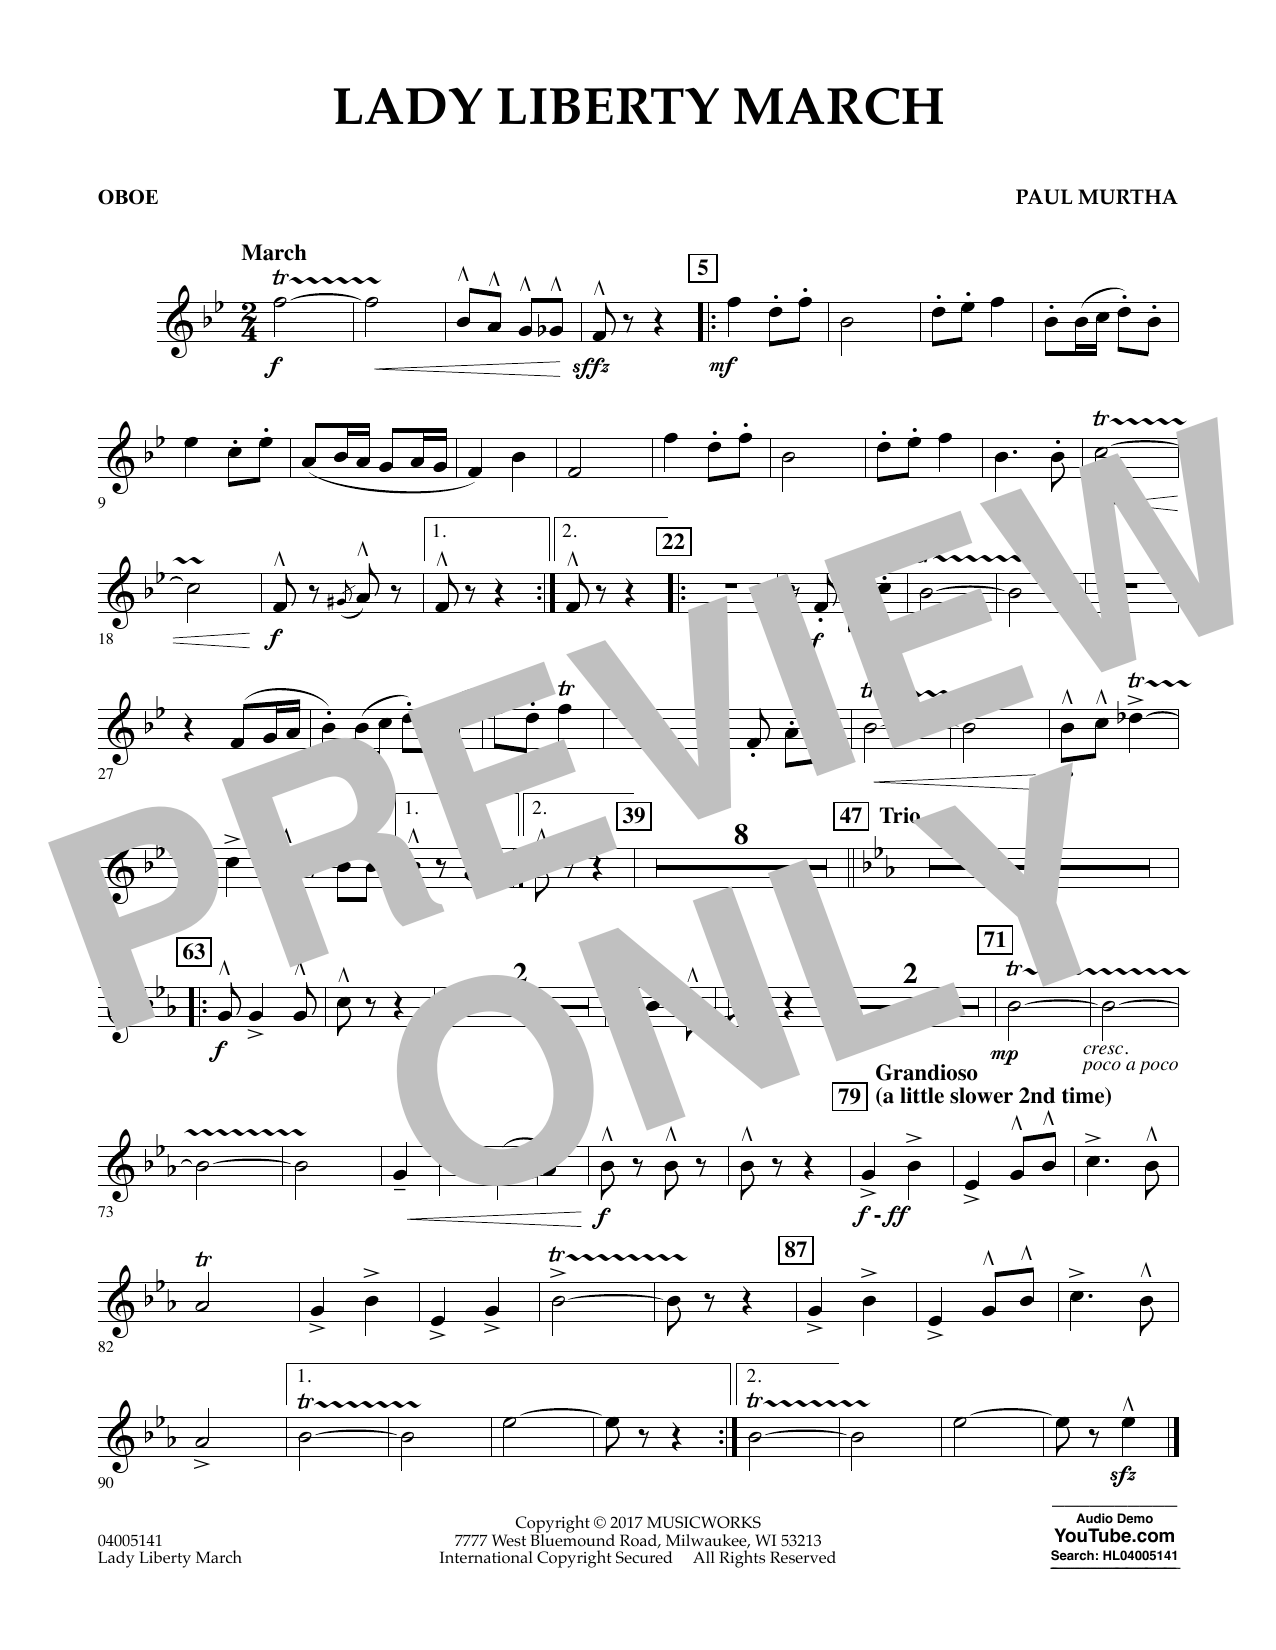 Paul Murtha Lady Liberty March - Oboe sheet music notes and chords. Download Printable PDF.